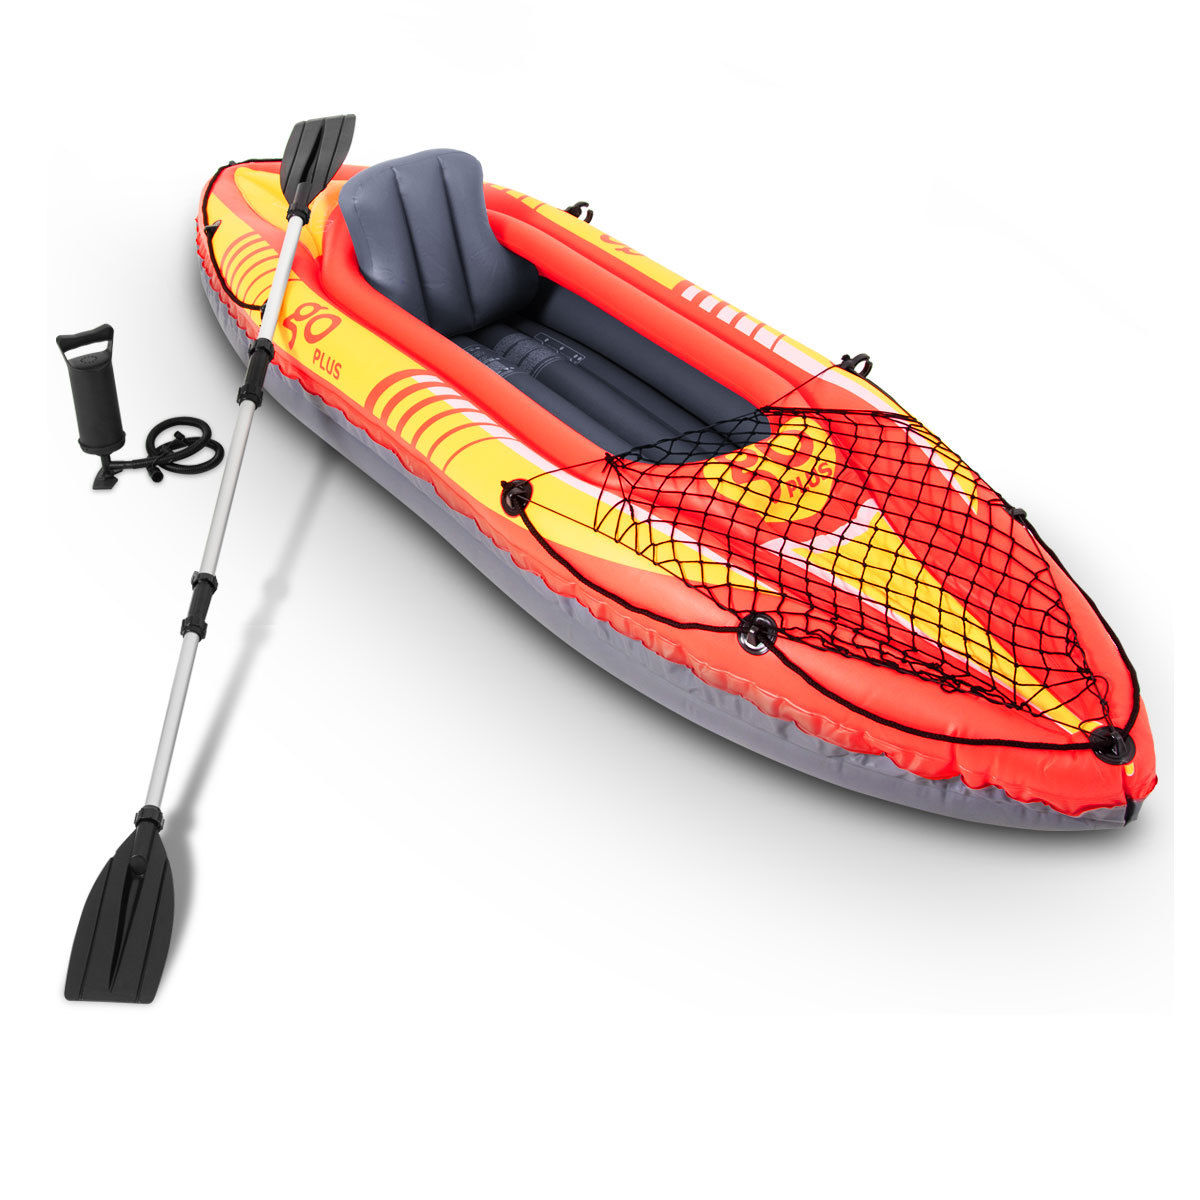 Goplus 1-Person Inflatable Canoe Boat Kayak Set W  Aluminum Alloy Oar Hand Pump by Costway